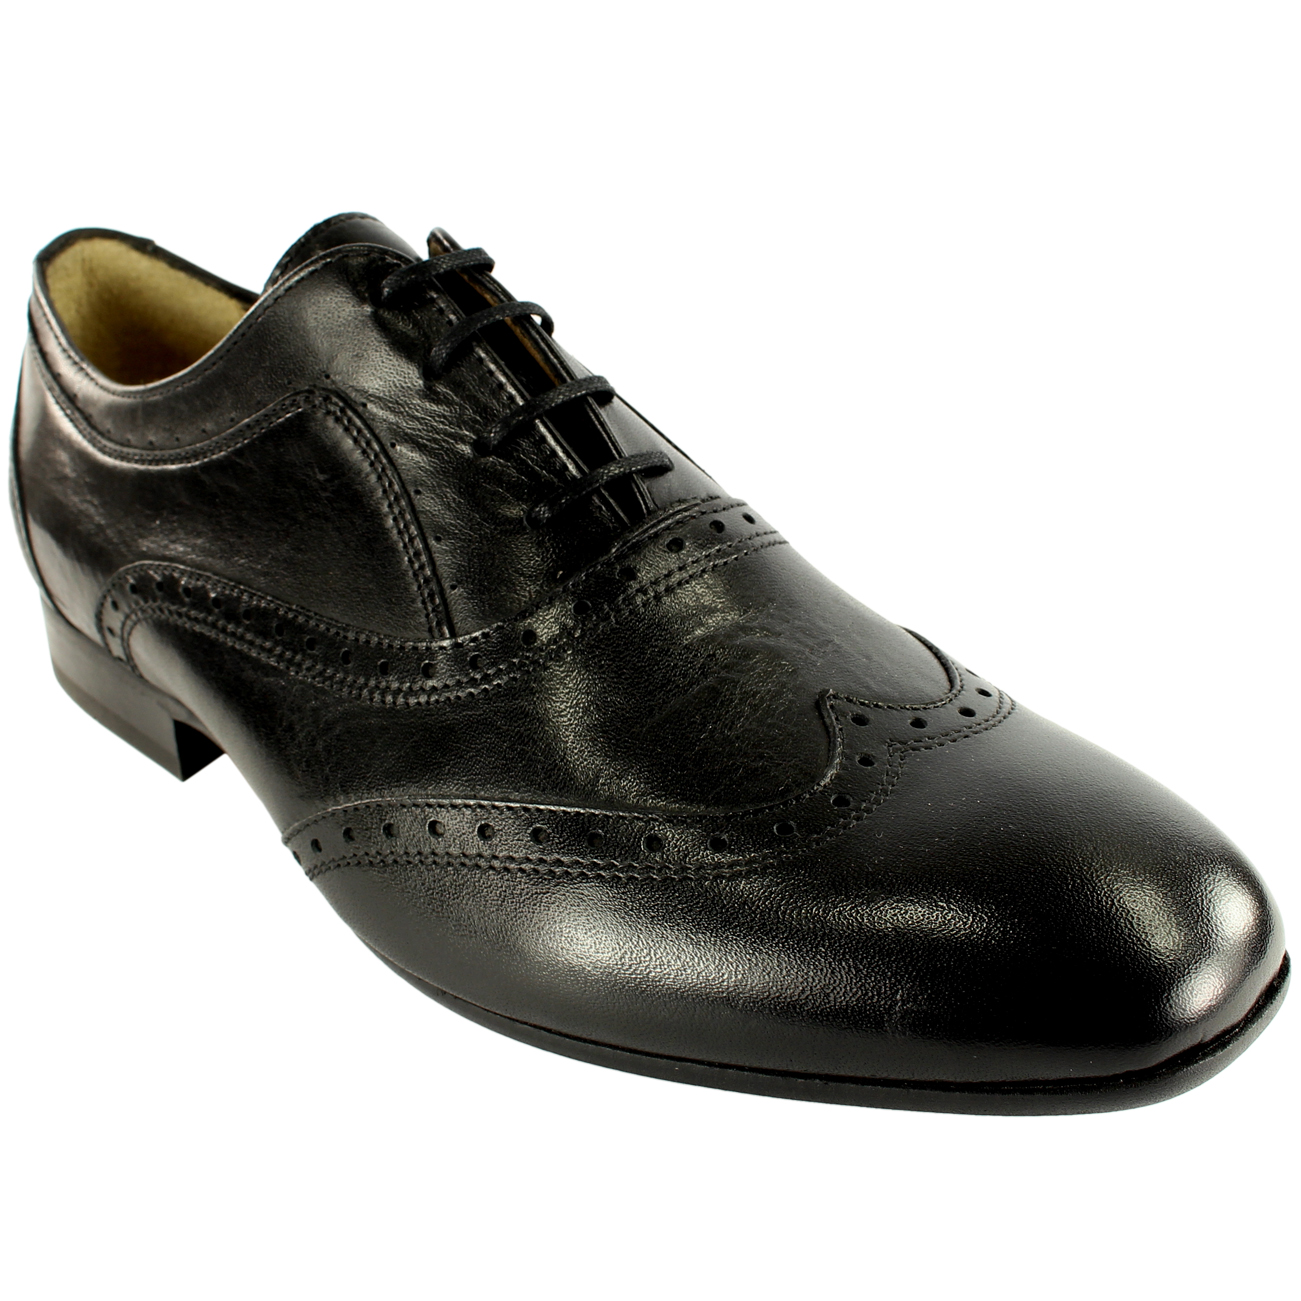 Uomo H By Up Hudson Francis Brogue Lace Up By Smart Leder Schuhes New UK Größes 7-13 e12aeb